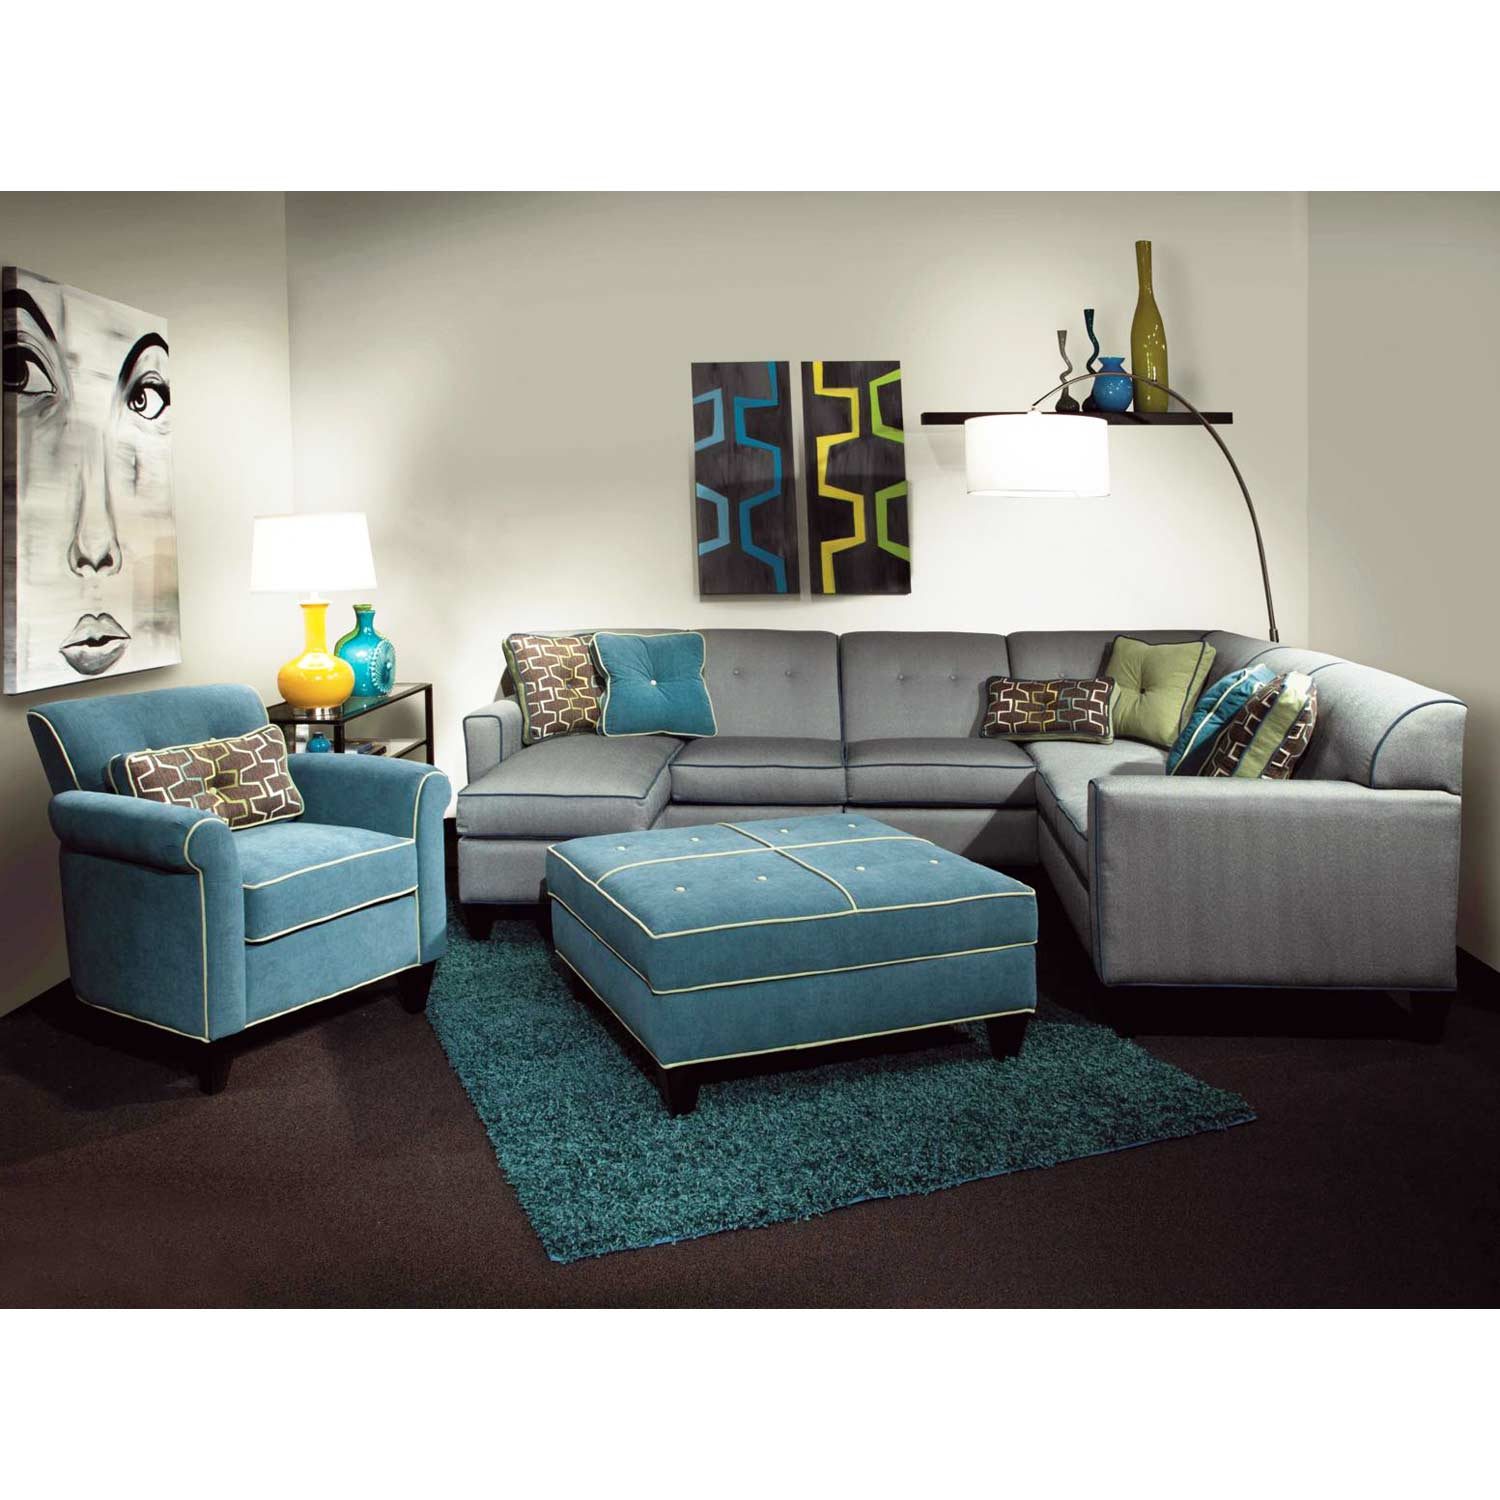 separate sectional pieces images With separate sectional sofa pieces